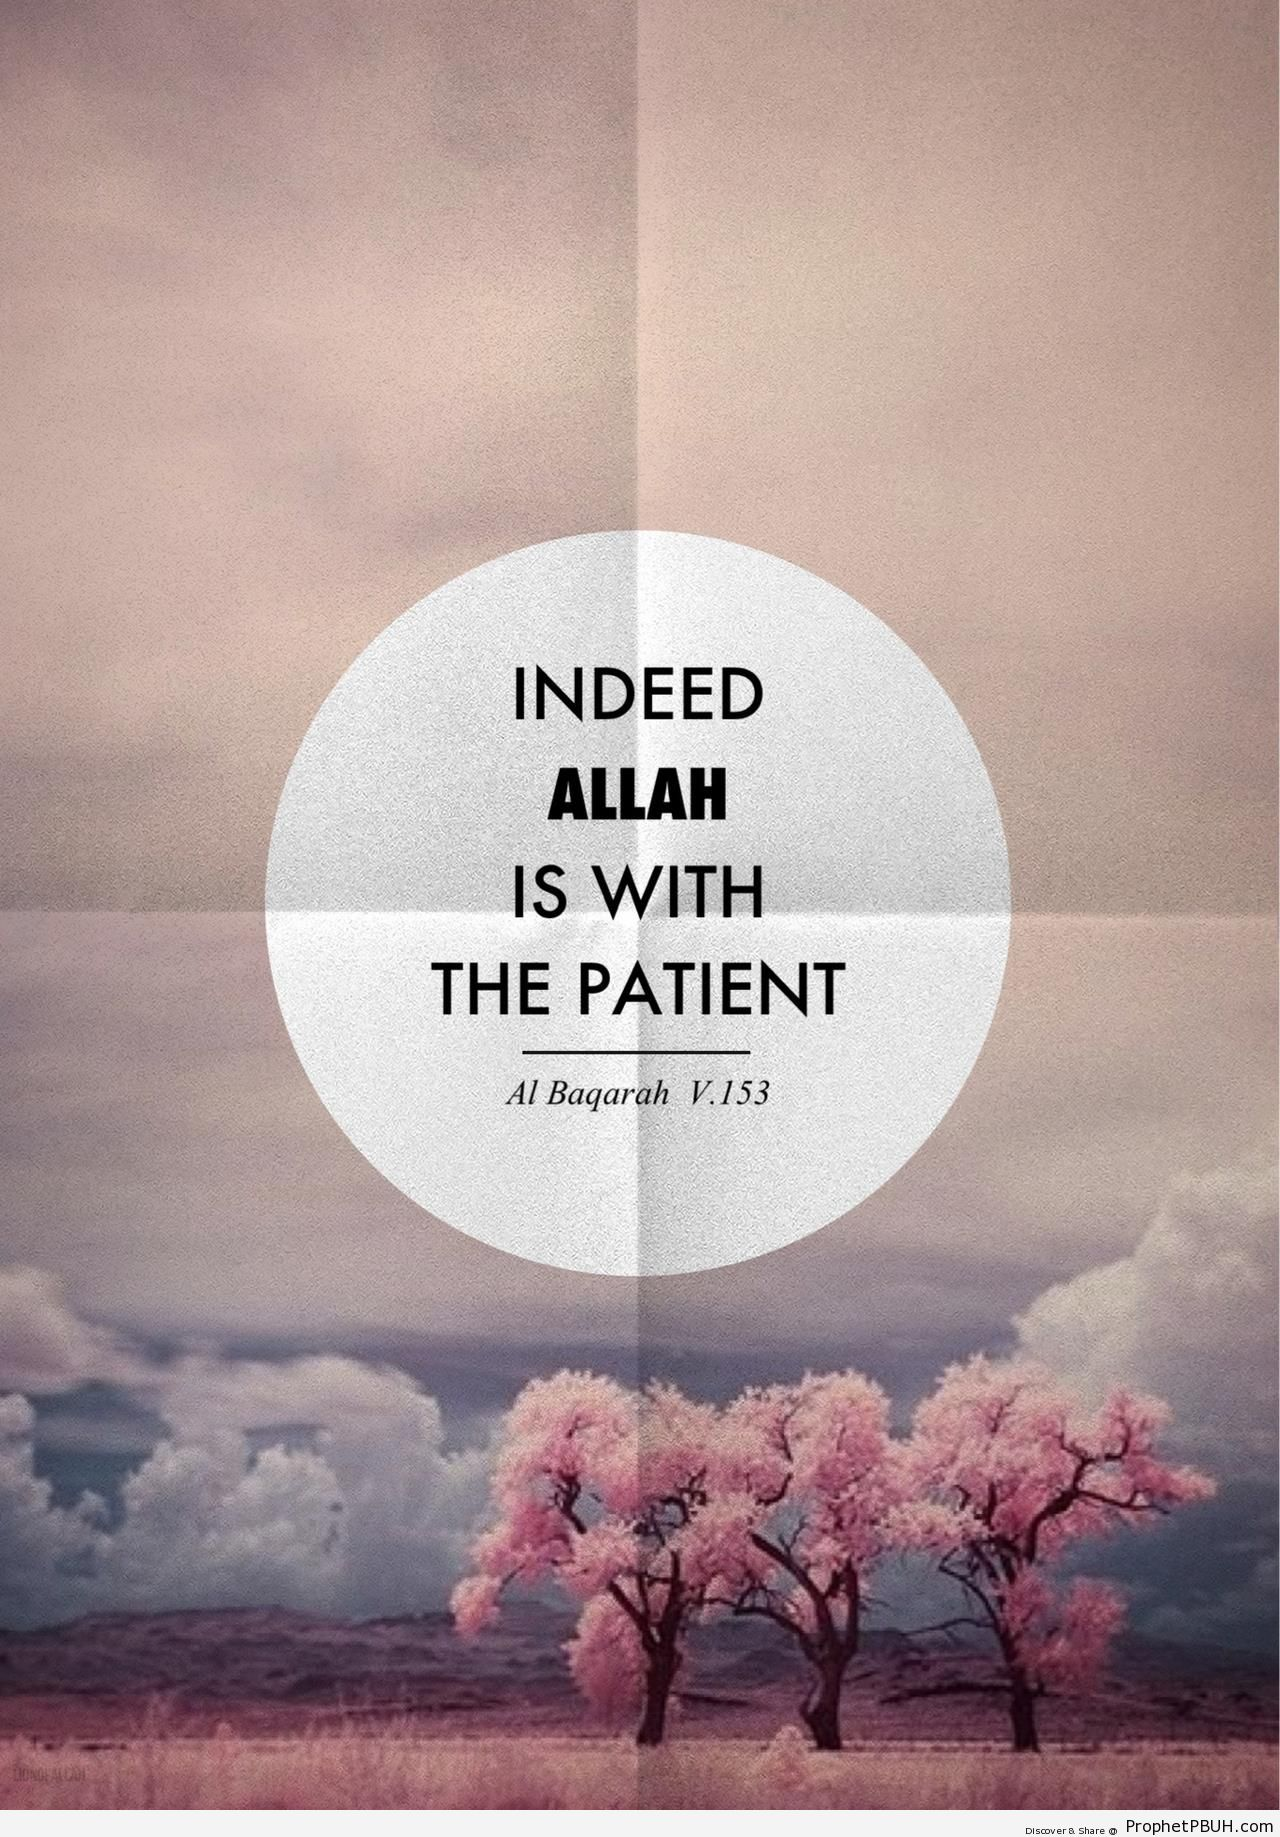 Quran 2-153 - Surat al-Baqarah - Islamic Quotes About Patience (Sabr)